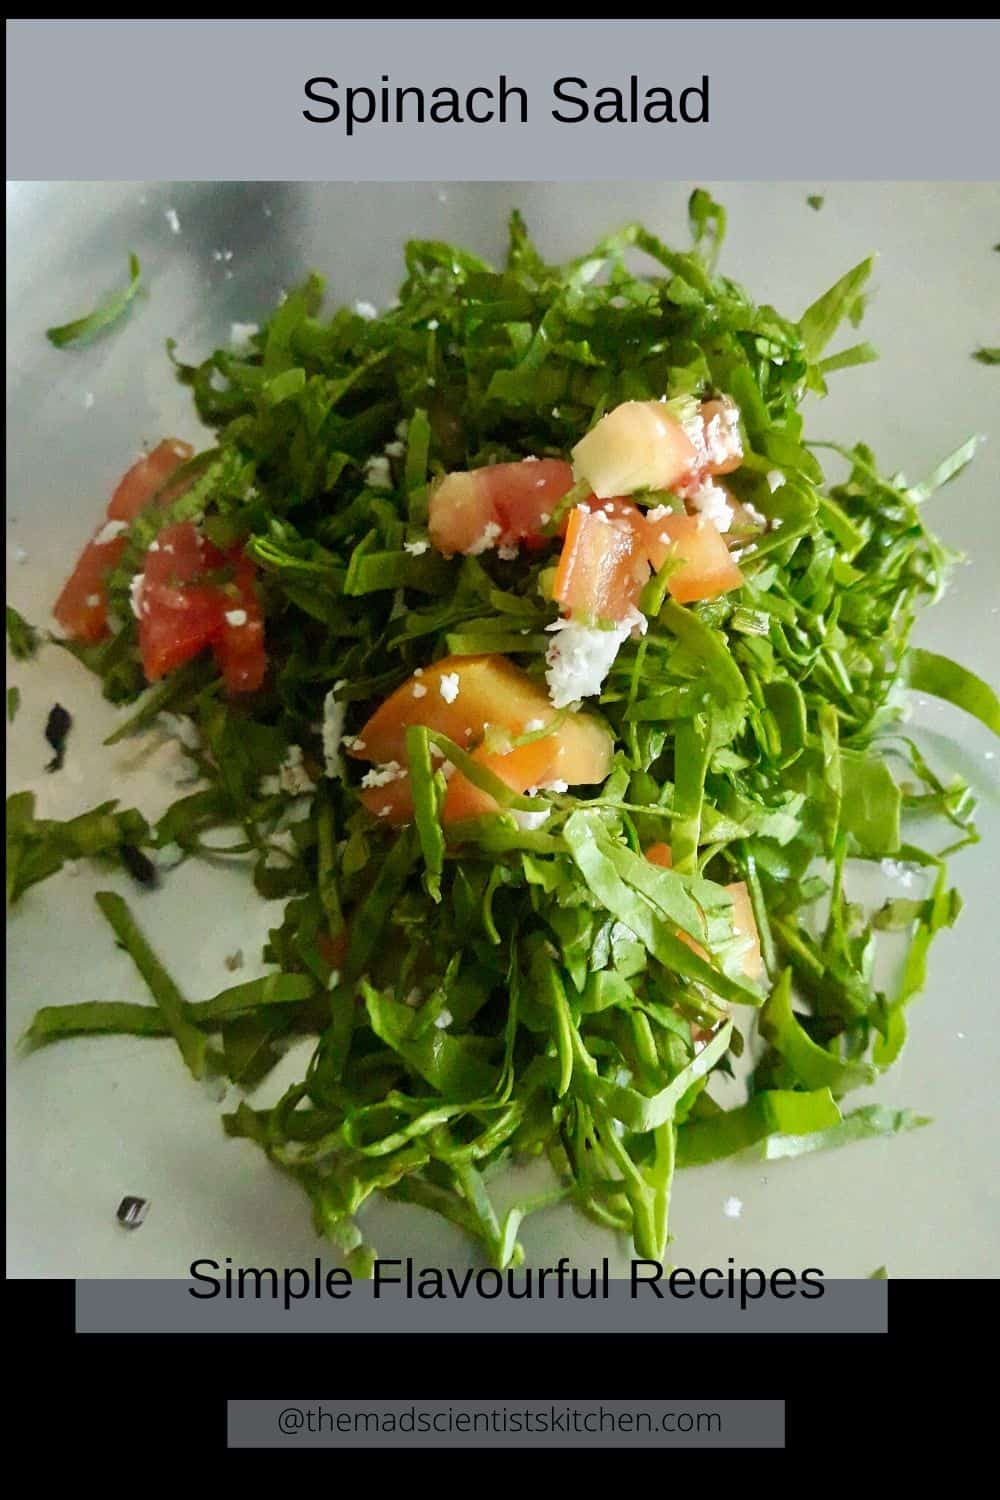 A serving of palak salad